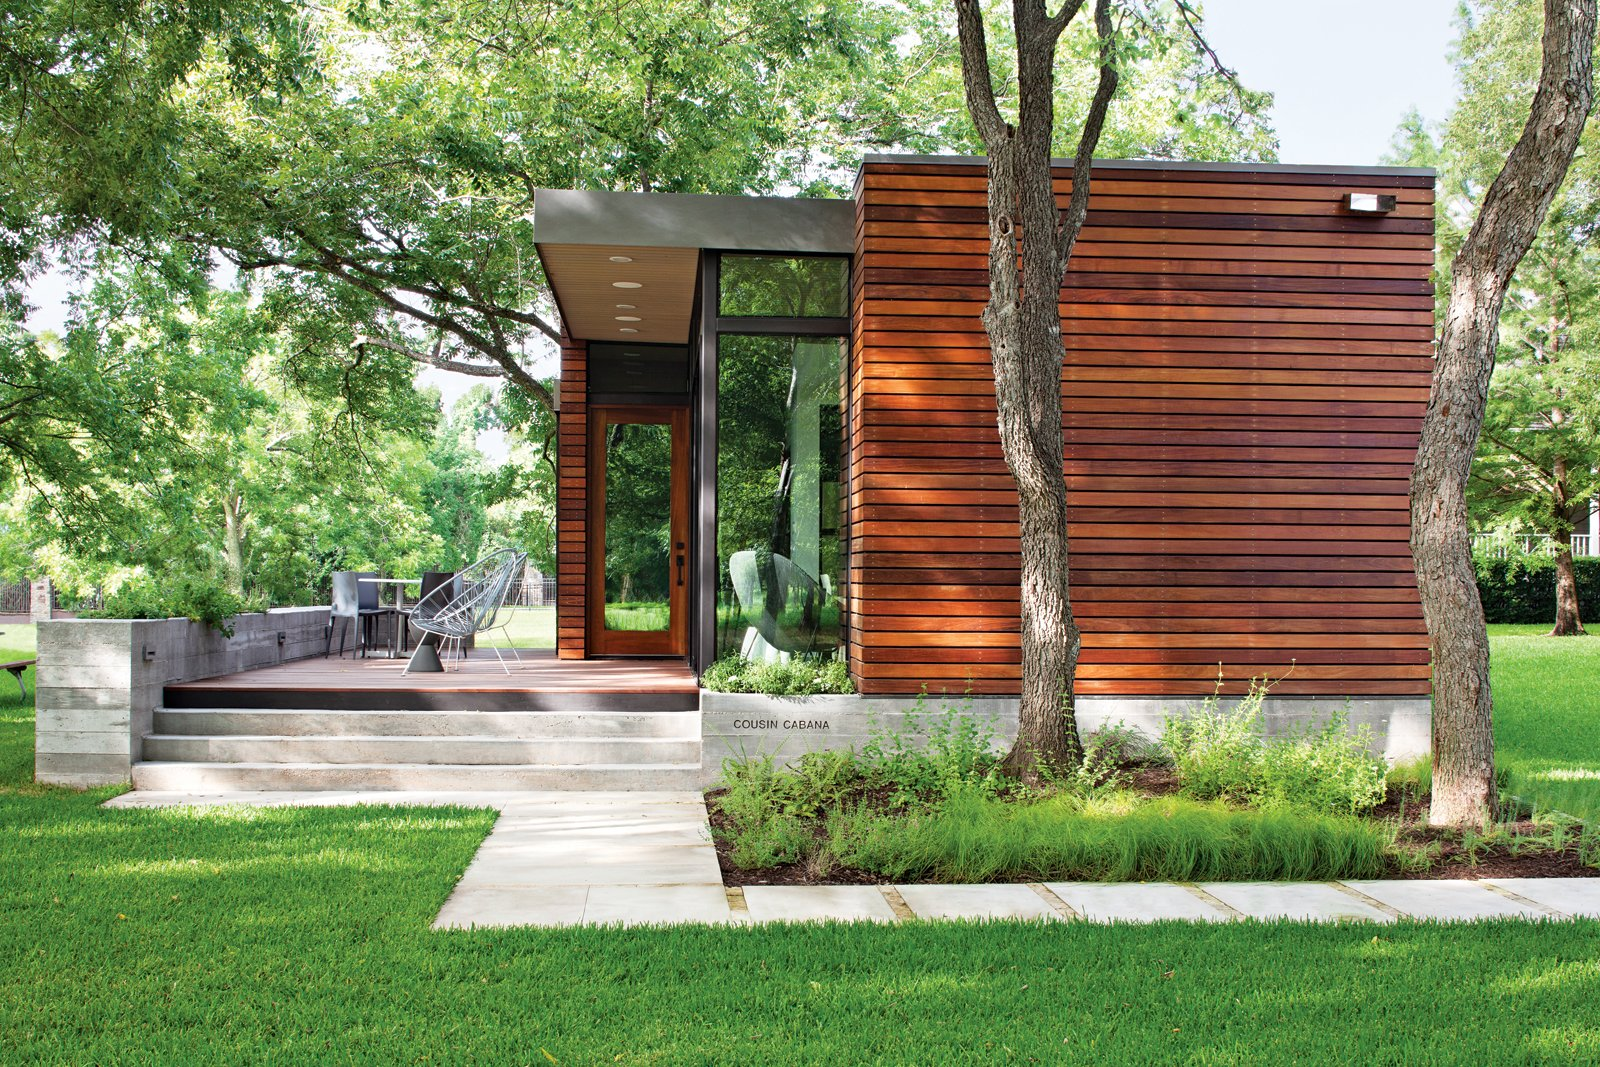 Landscape architect Tait Moring installed pavers around the structure's perimeter and kept the tree cover intact. Photo by: Kimberly Davis  Tiny Homes  by Erika Heet from Small and Modern: A Family Lakeside Getaway in Texas